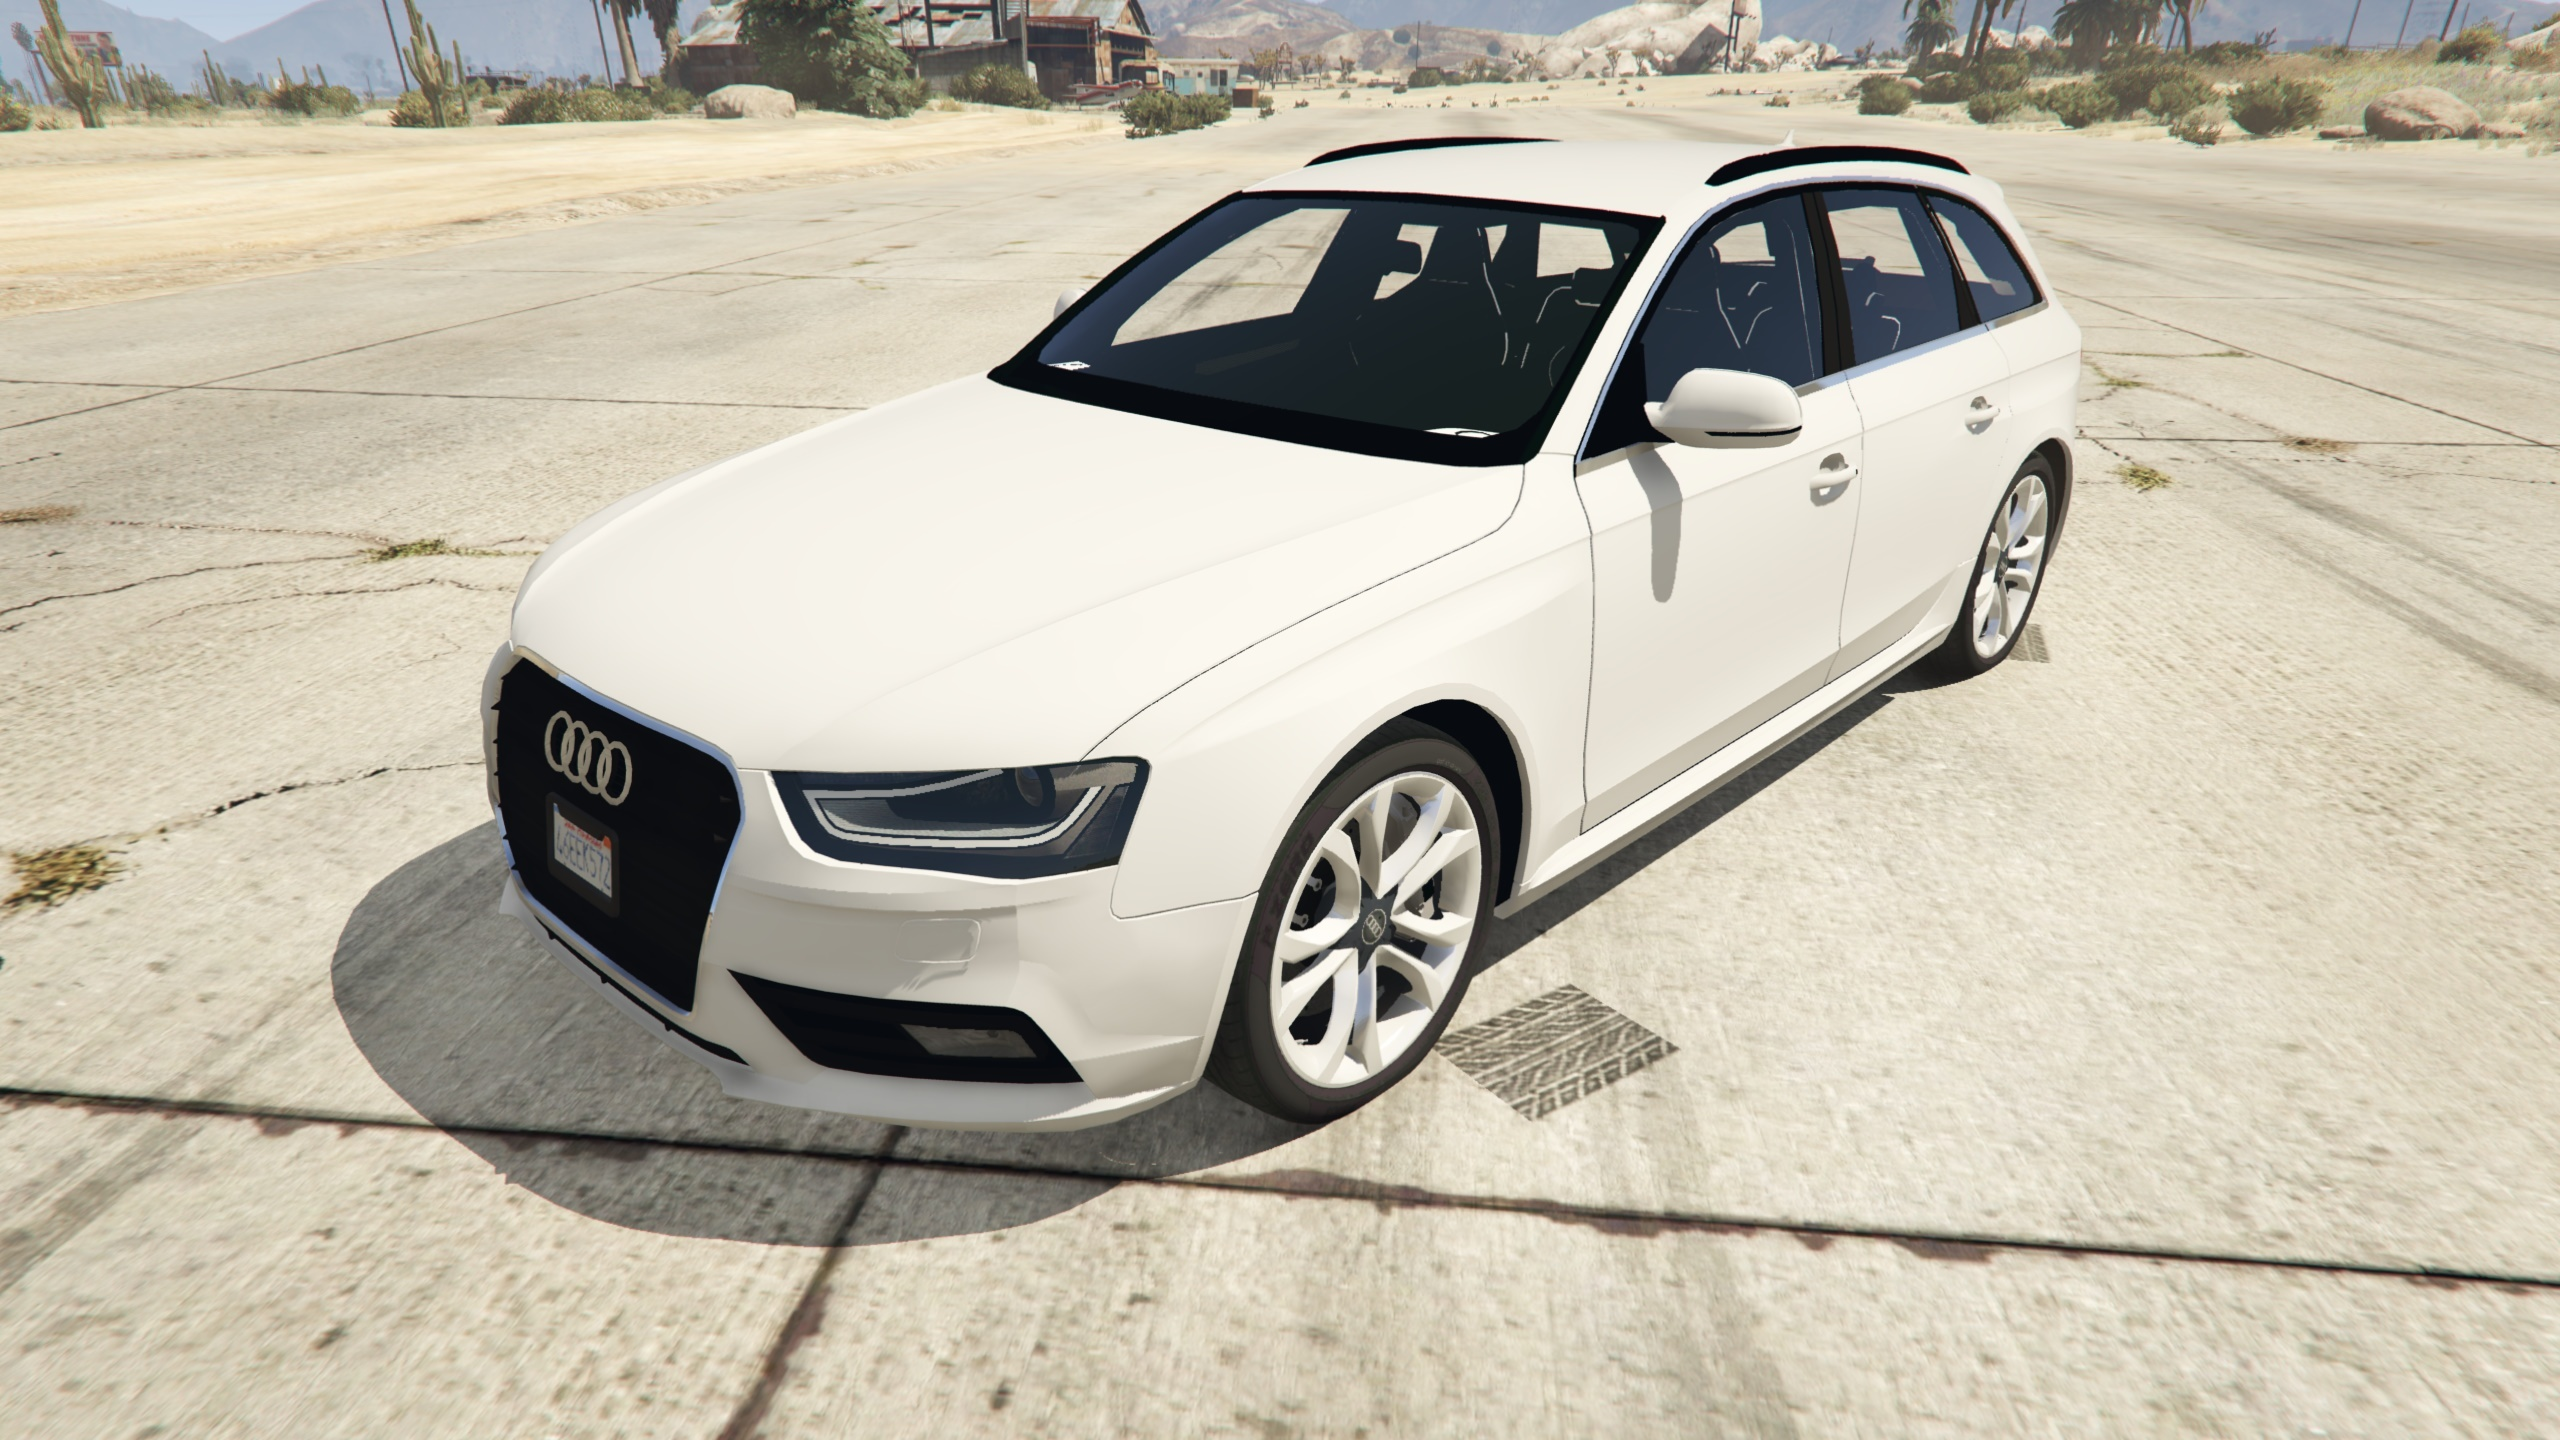 Audi A4 Avant Modified Best Of 2013 Audi A4 Avant Gta5 Mods Com-2460 Of Fresh Audi A4 Avant Modified